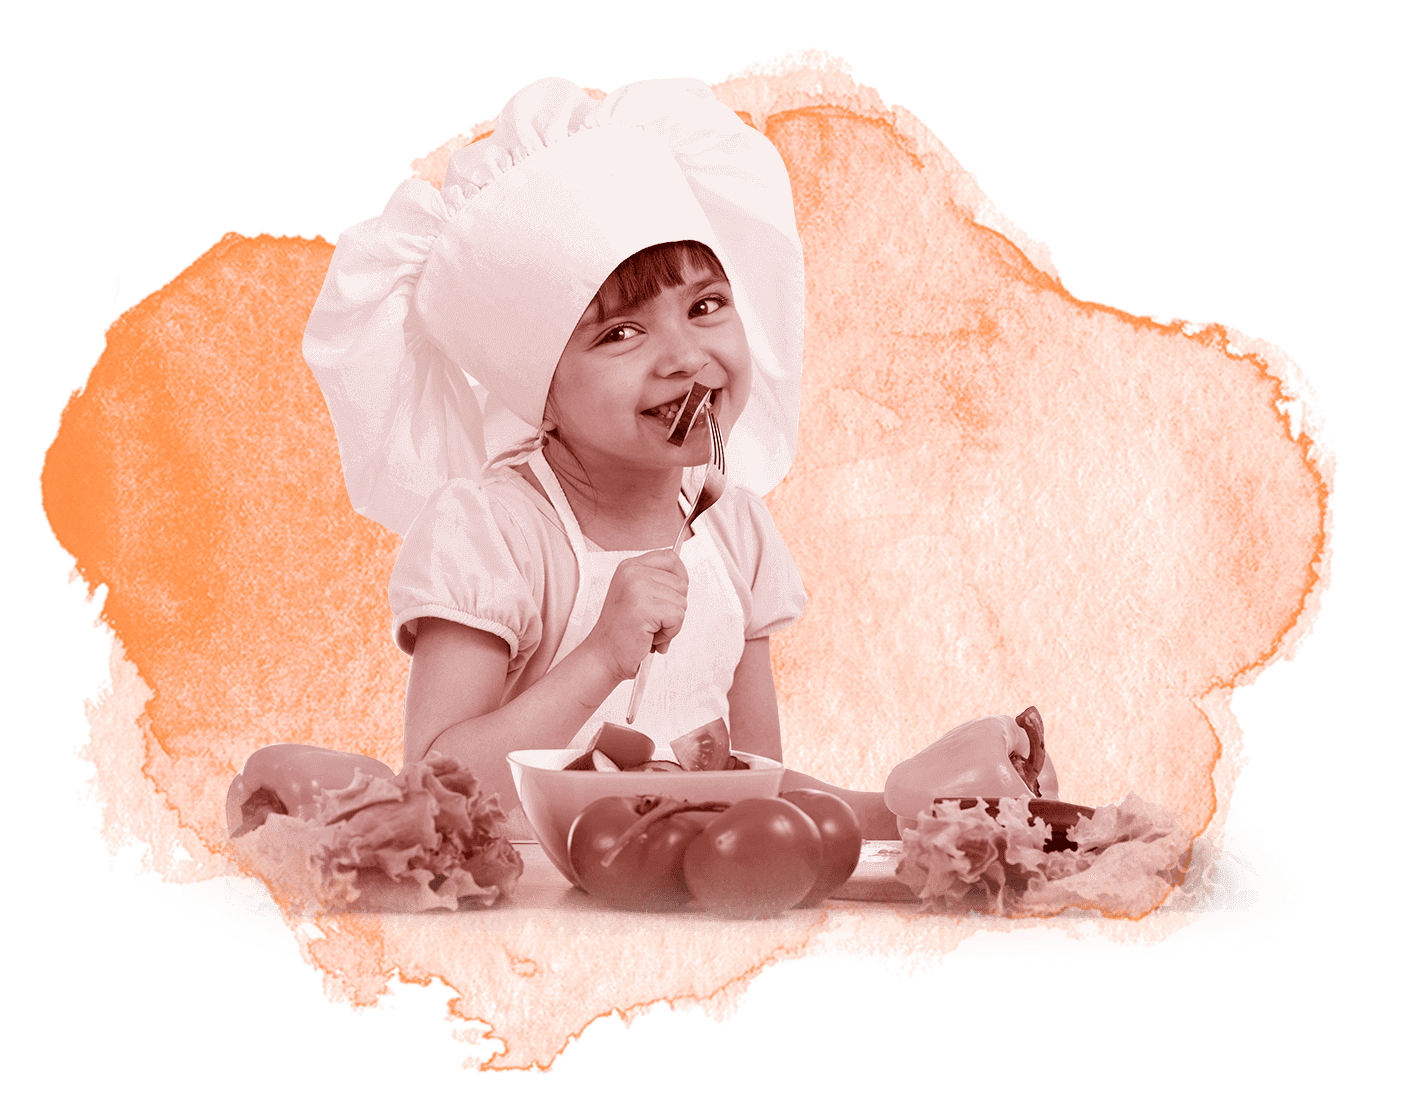 Child with chef hat and food